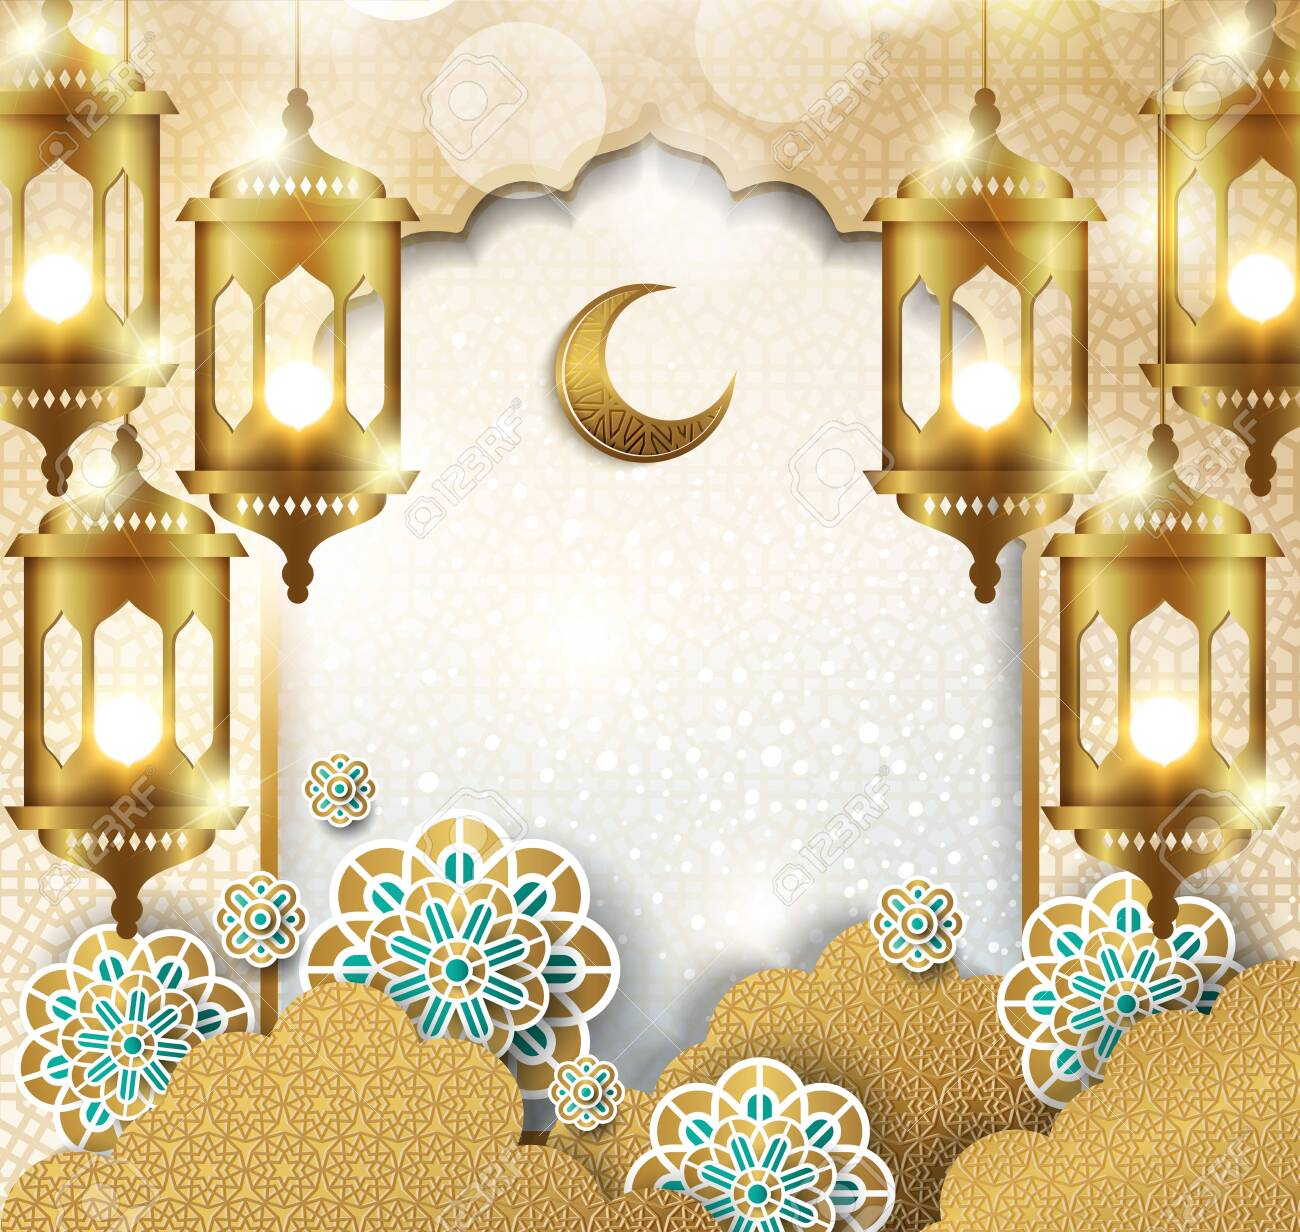 Ramadan kareem half a month with cut Clouds, 3D paper and golden lantern template islamic ornate background - 125046358